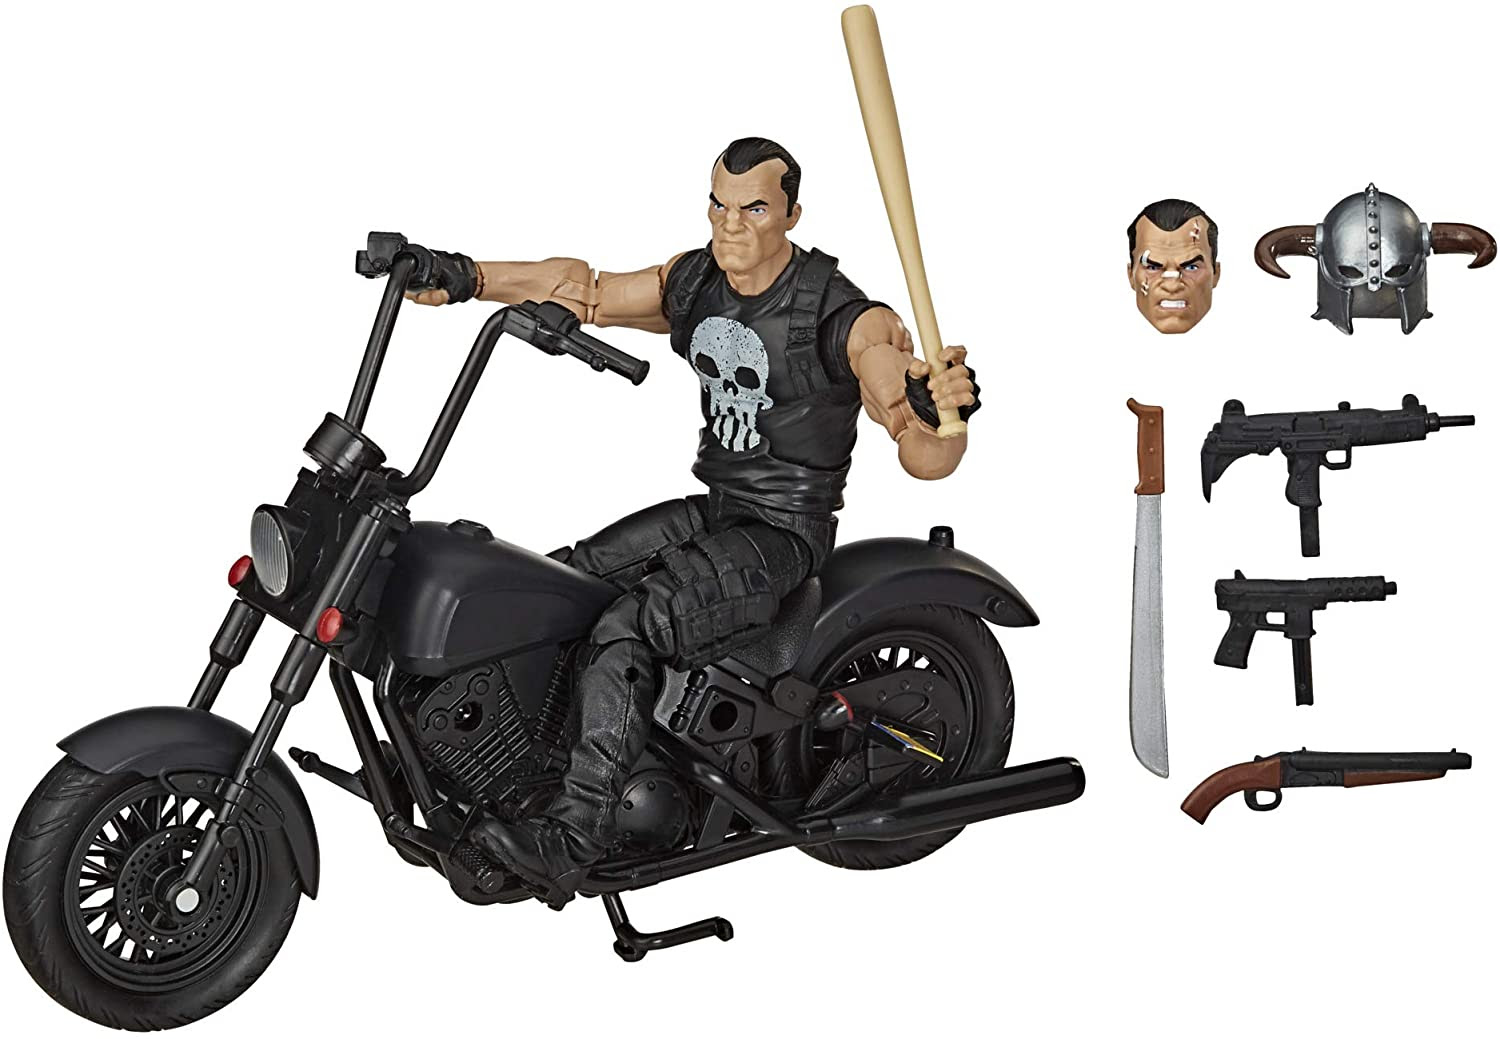 Image of Hasbro Marvel Legends Series 6-inch Collectible Action Figure The Punisher Toy and Motorcycle, Premium Design and 7 Accessories